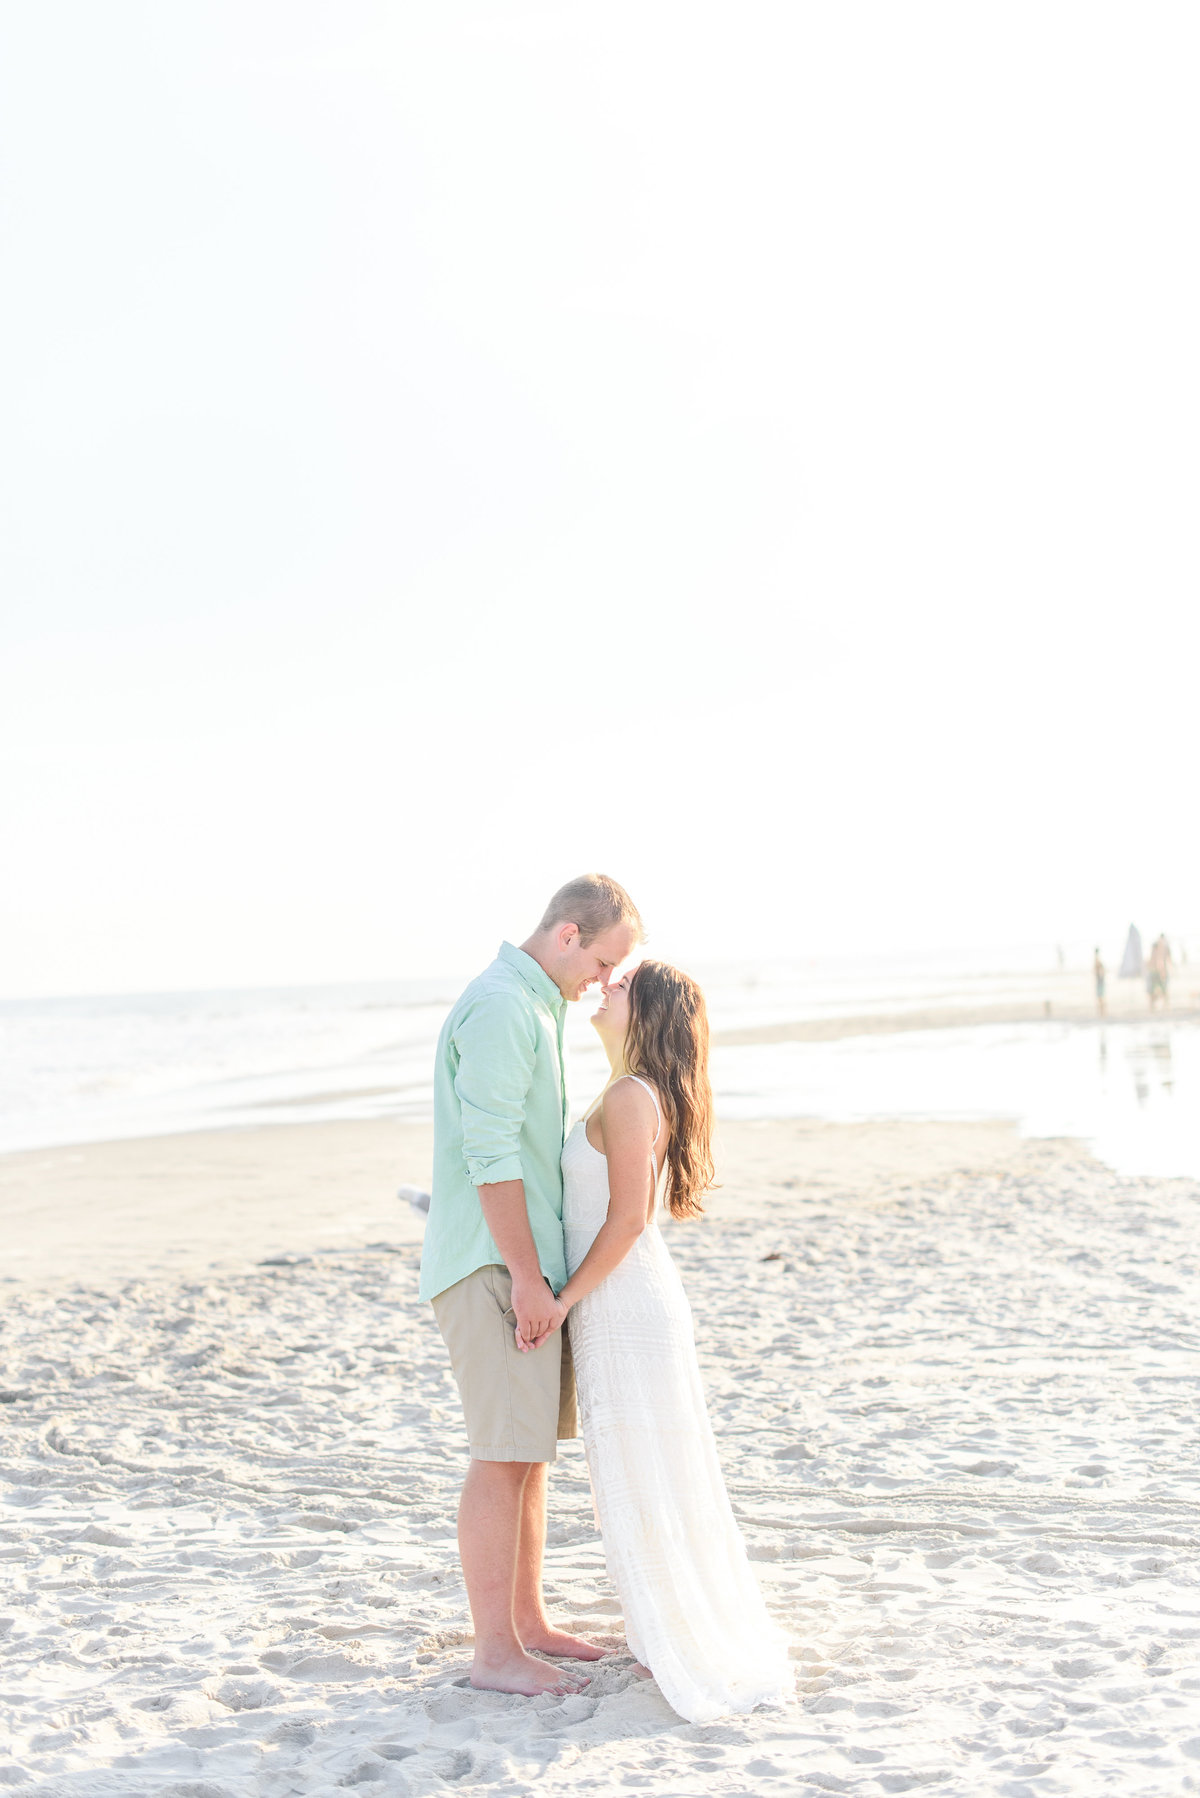 Olivia Rae Photography | Ocean City, NJ Engagement Session-34